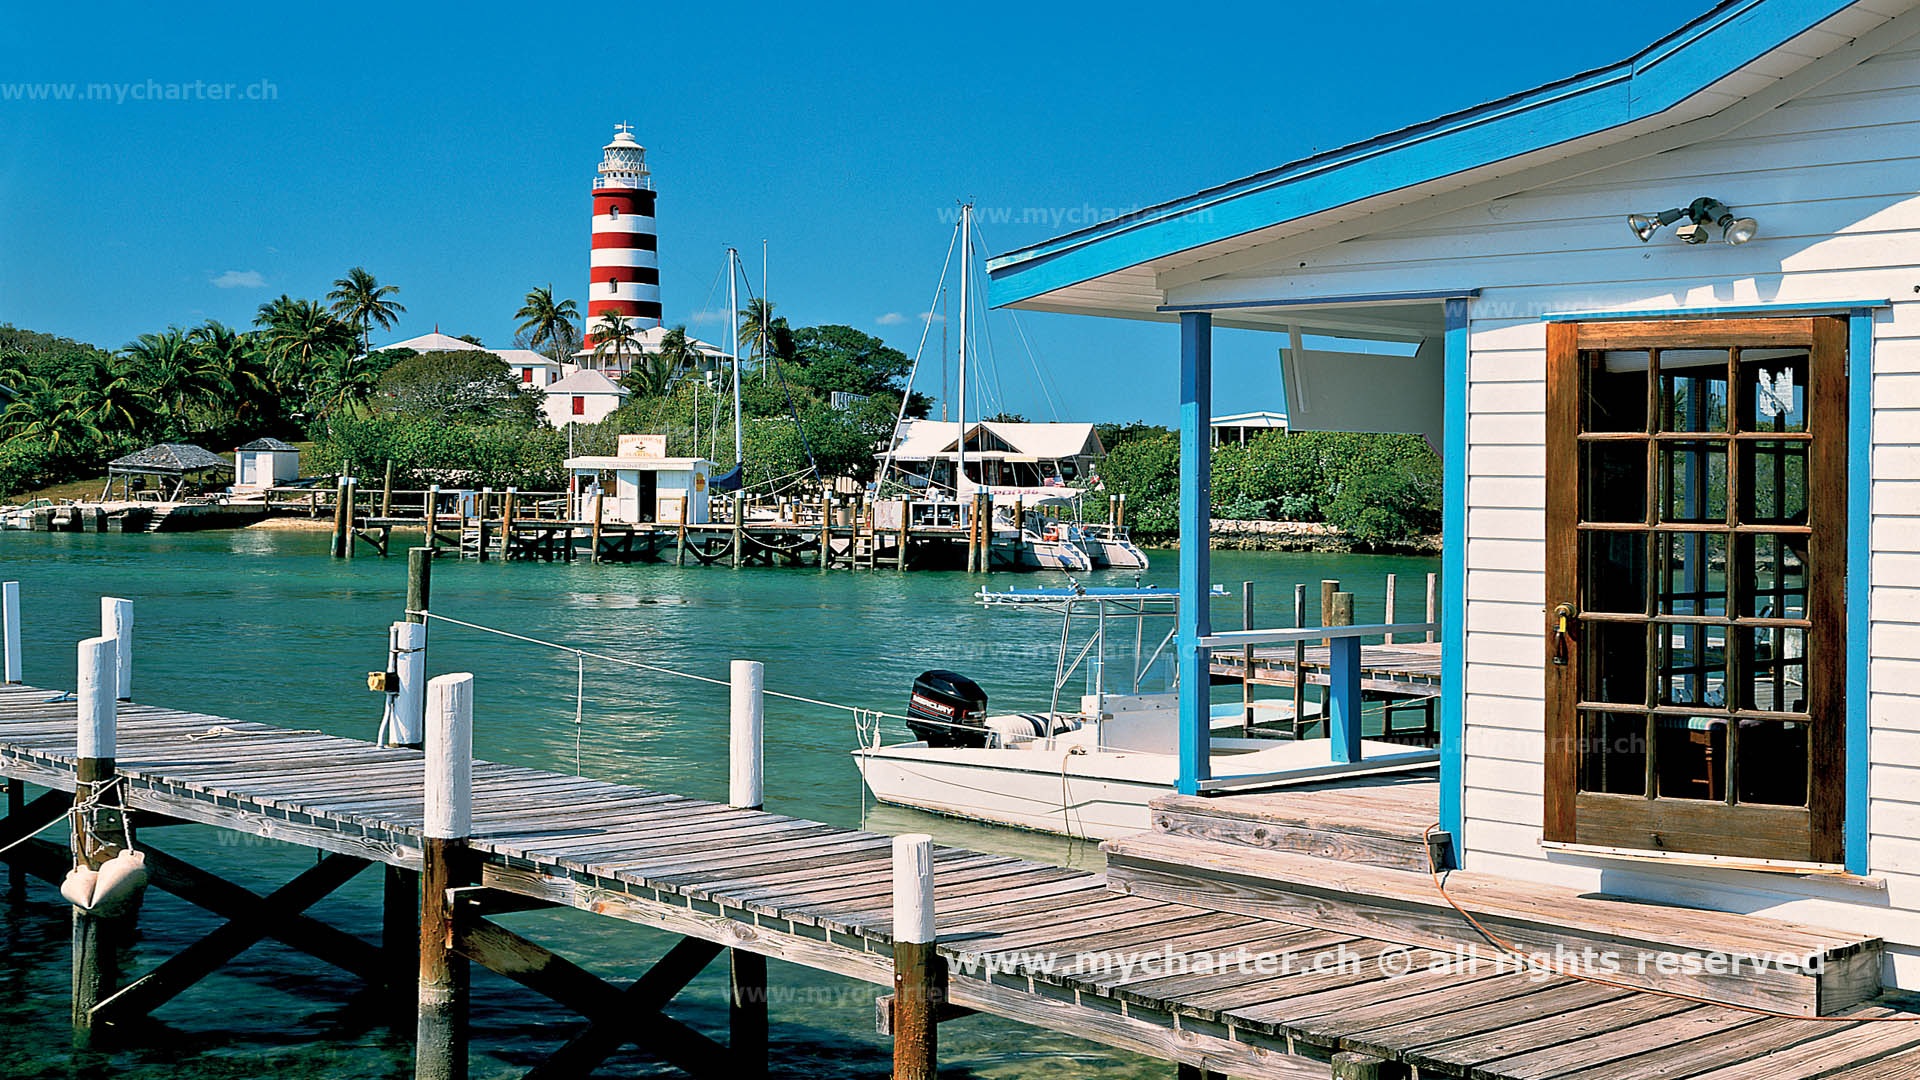 Bahamas - Hope Town of Elbow Cay - Abacos